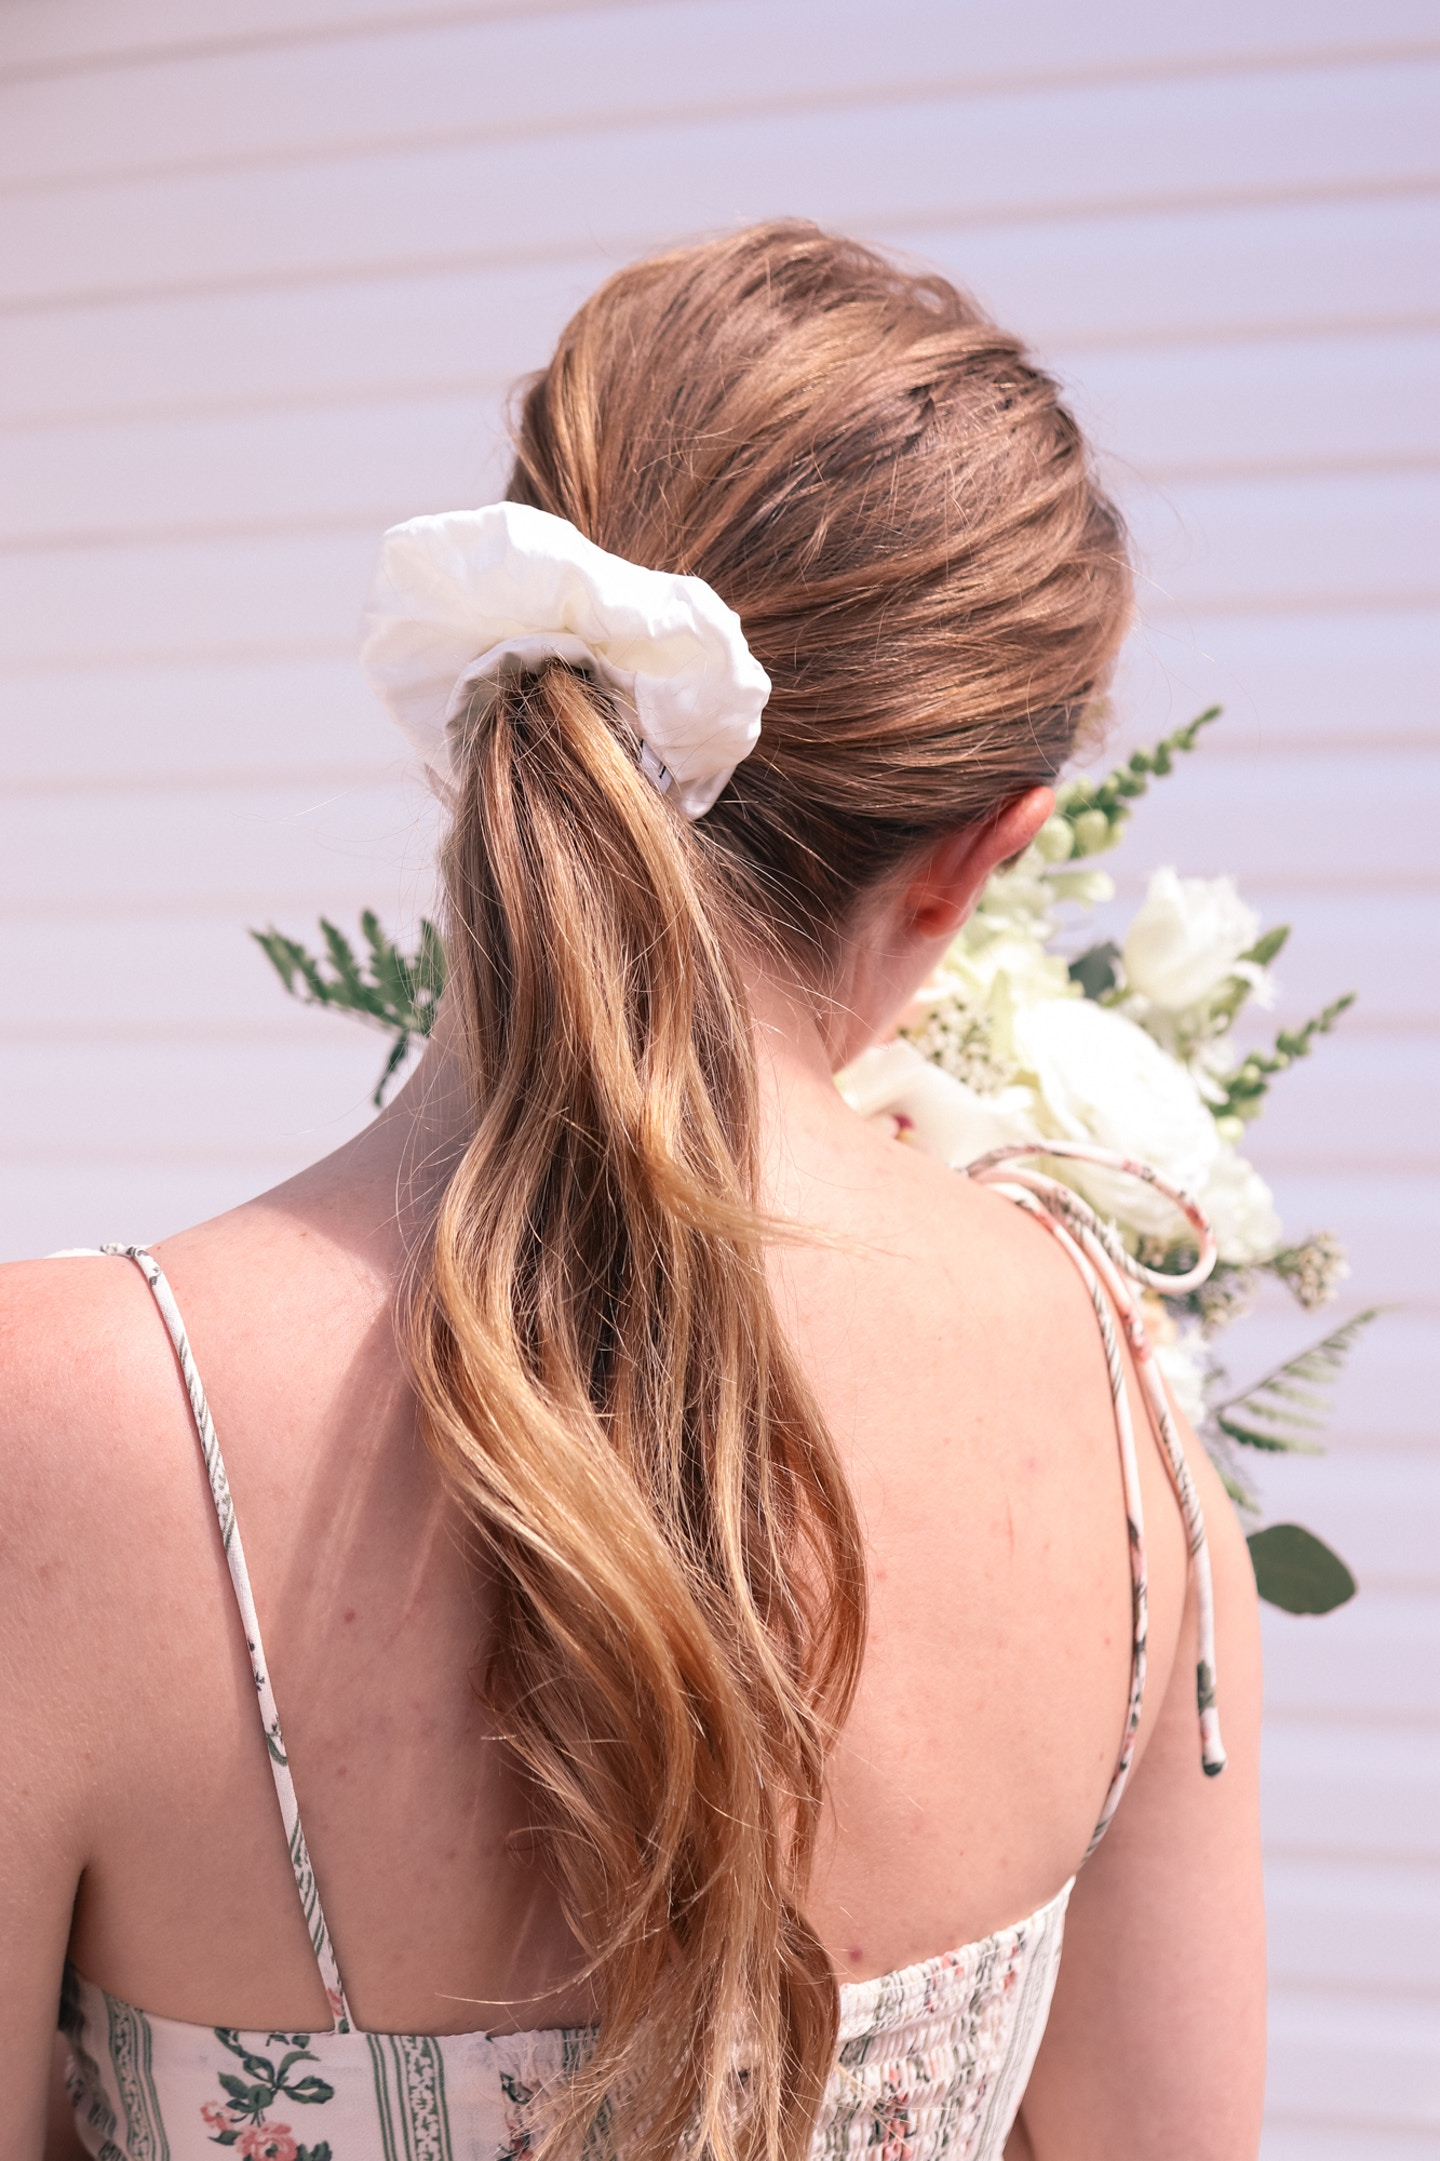 Lionheart the Label Mulberry Silk White Jumbo scrunchie: this chic hair accessory is so easy to feel pulled together, and is super gentle on your hair!